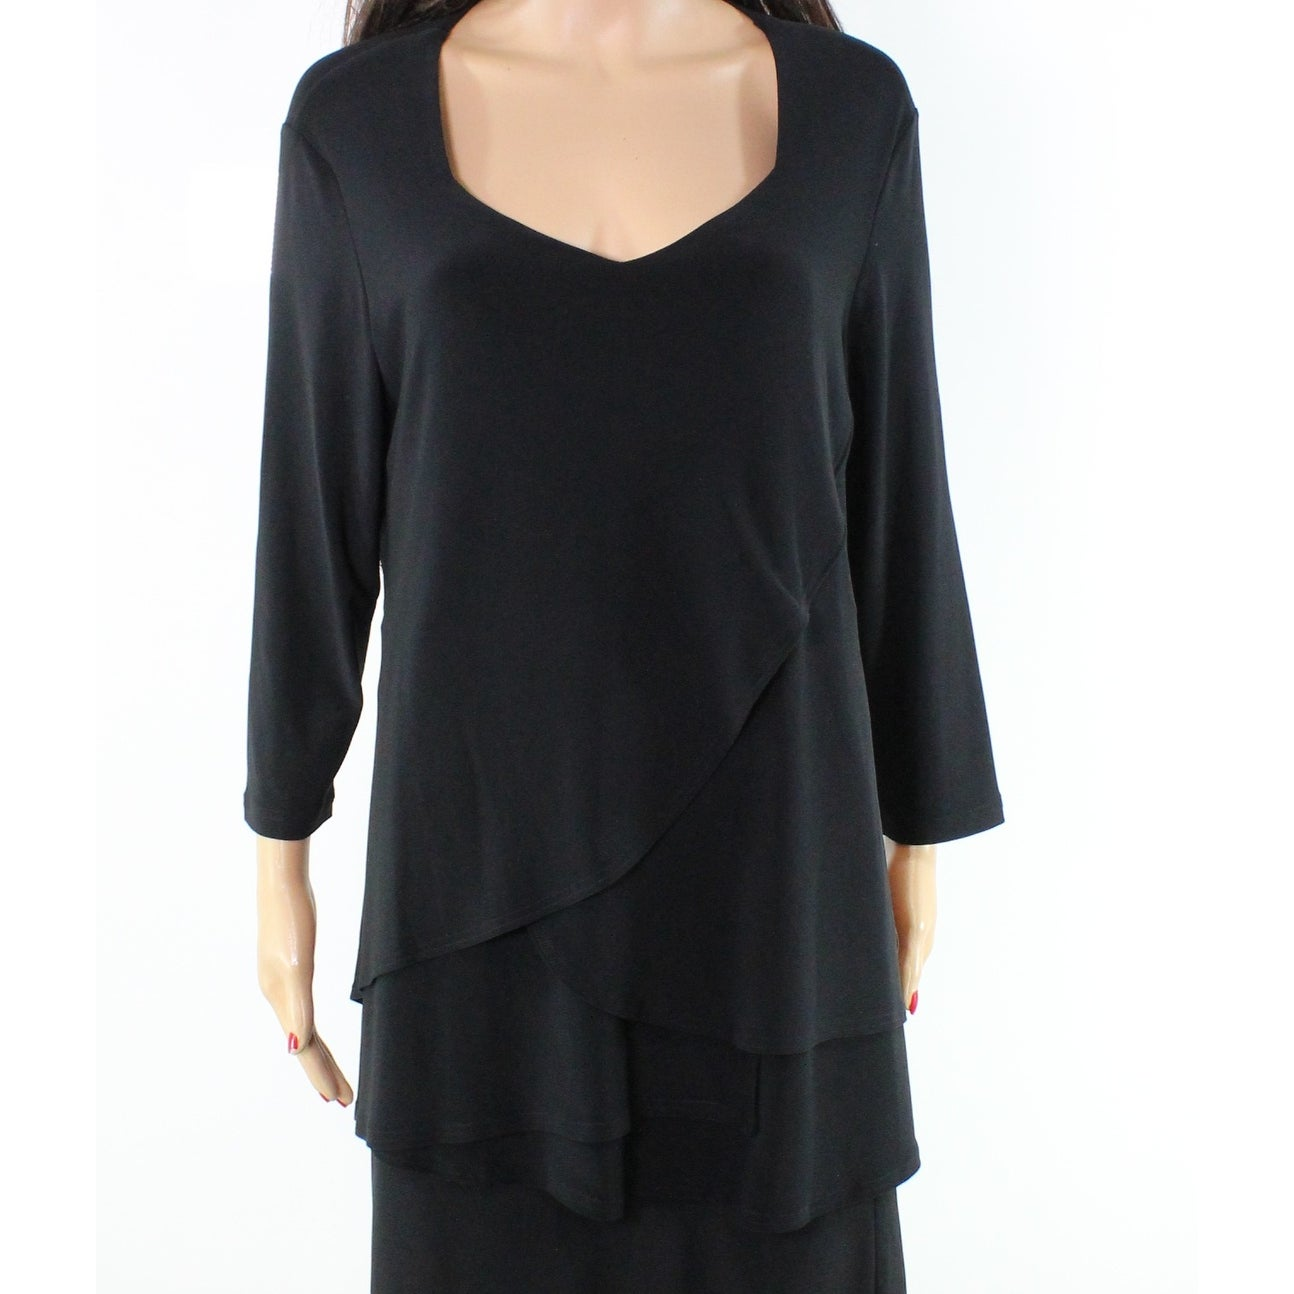 155a3d07853 Shop Sympli NEW Black Layered 3/4 Sleeve Women's Size 14 Top Blouse - Free  Shipping Today - Overstock - 19795949